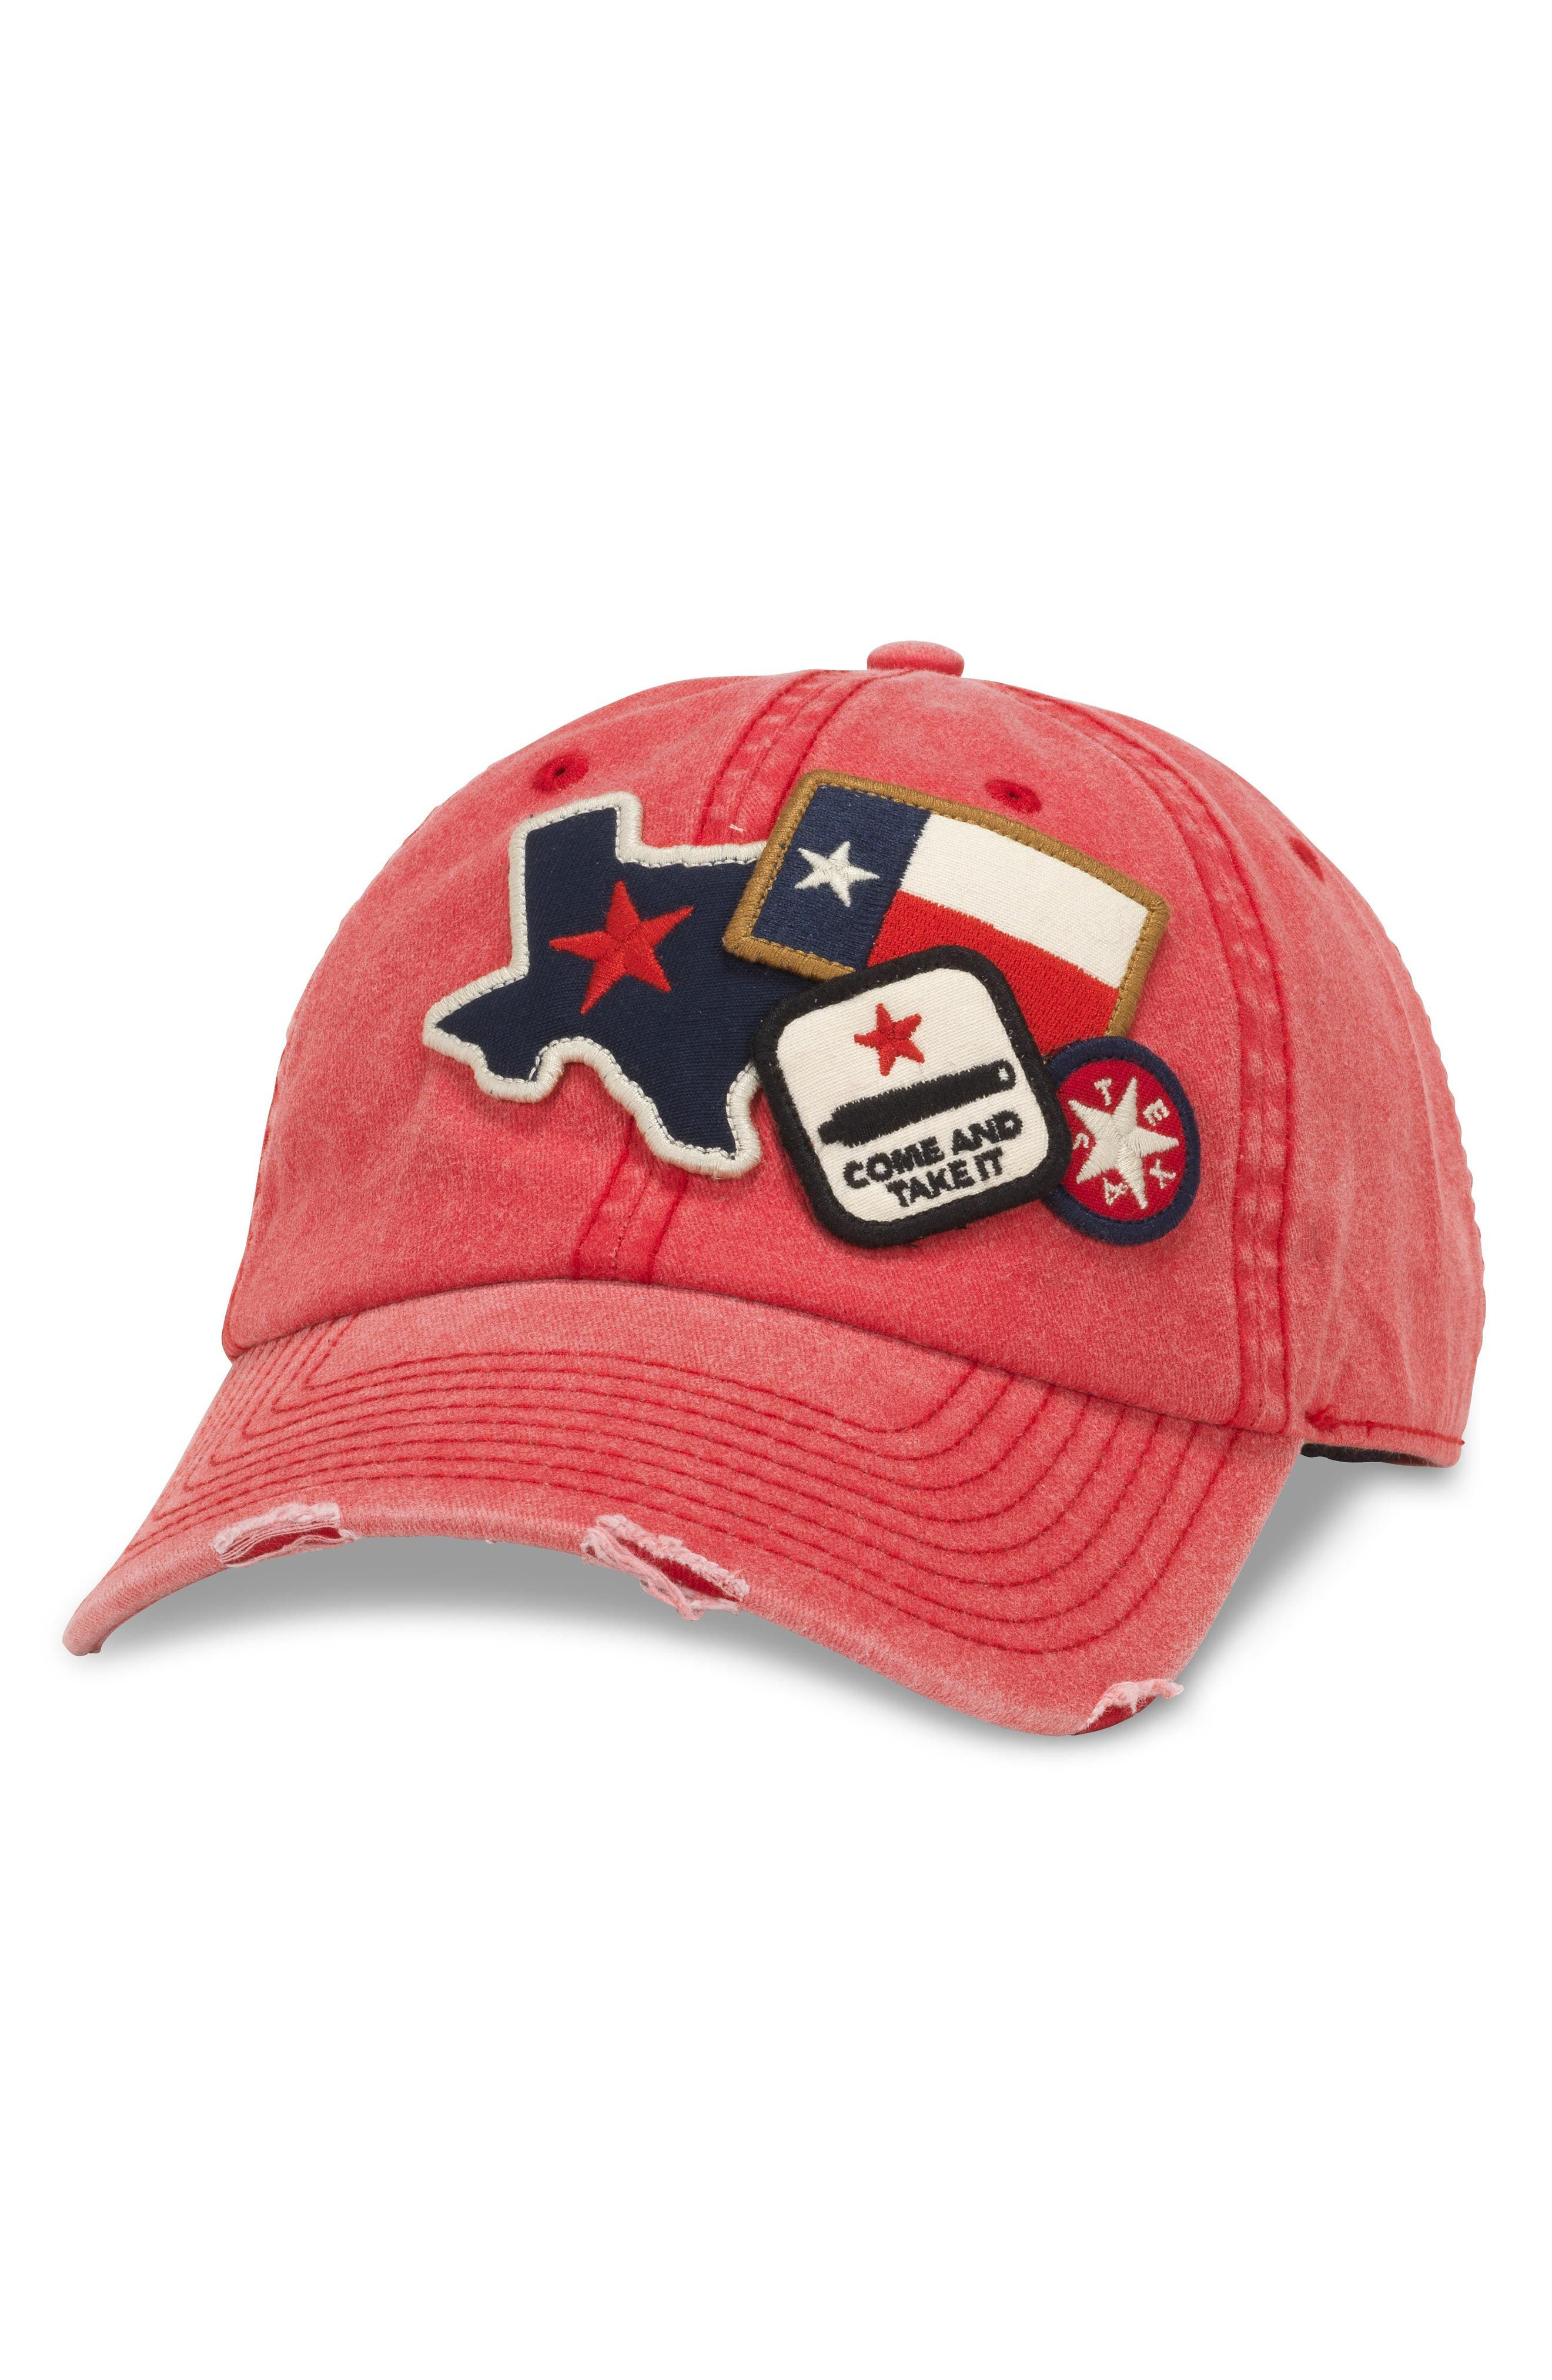 Iconic - Texas Ball Cap,                             Main thumbnail 1, color,                             Red